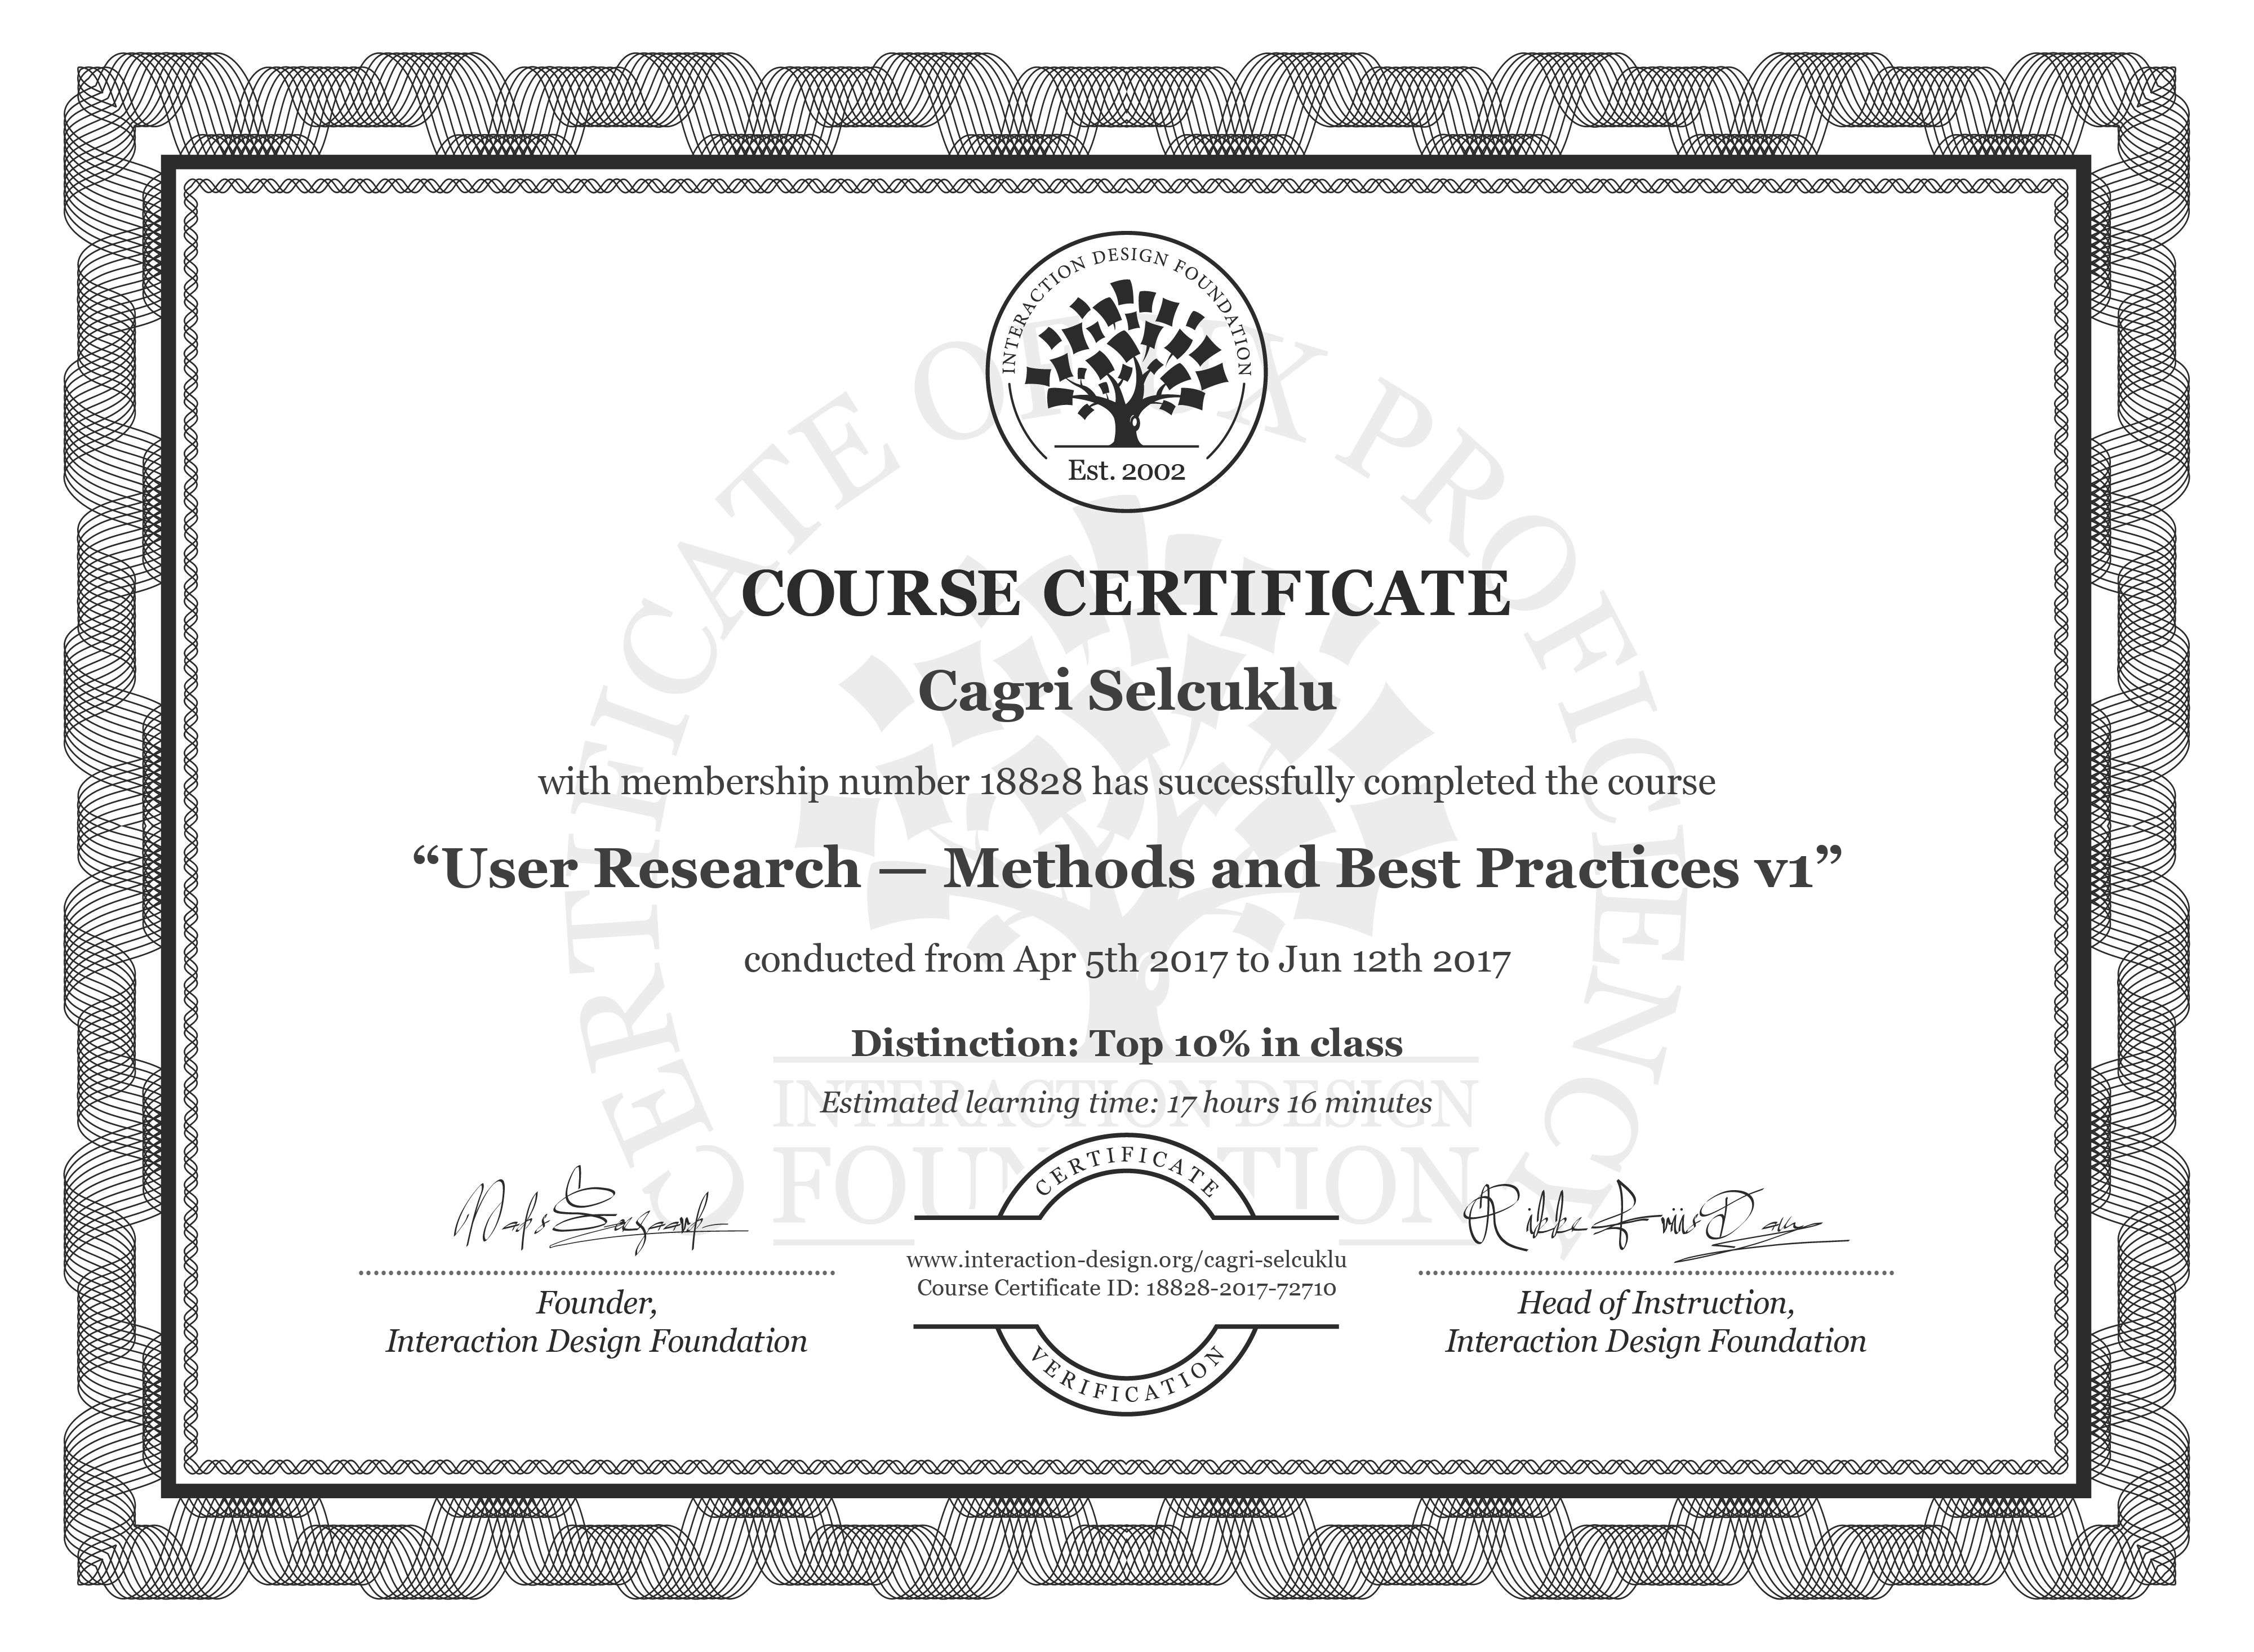 Cagri Selcuklu's Course Certificate: User Research — Methods and Best Practices